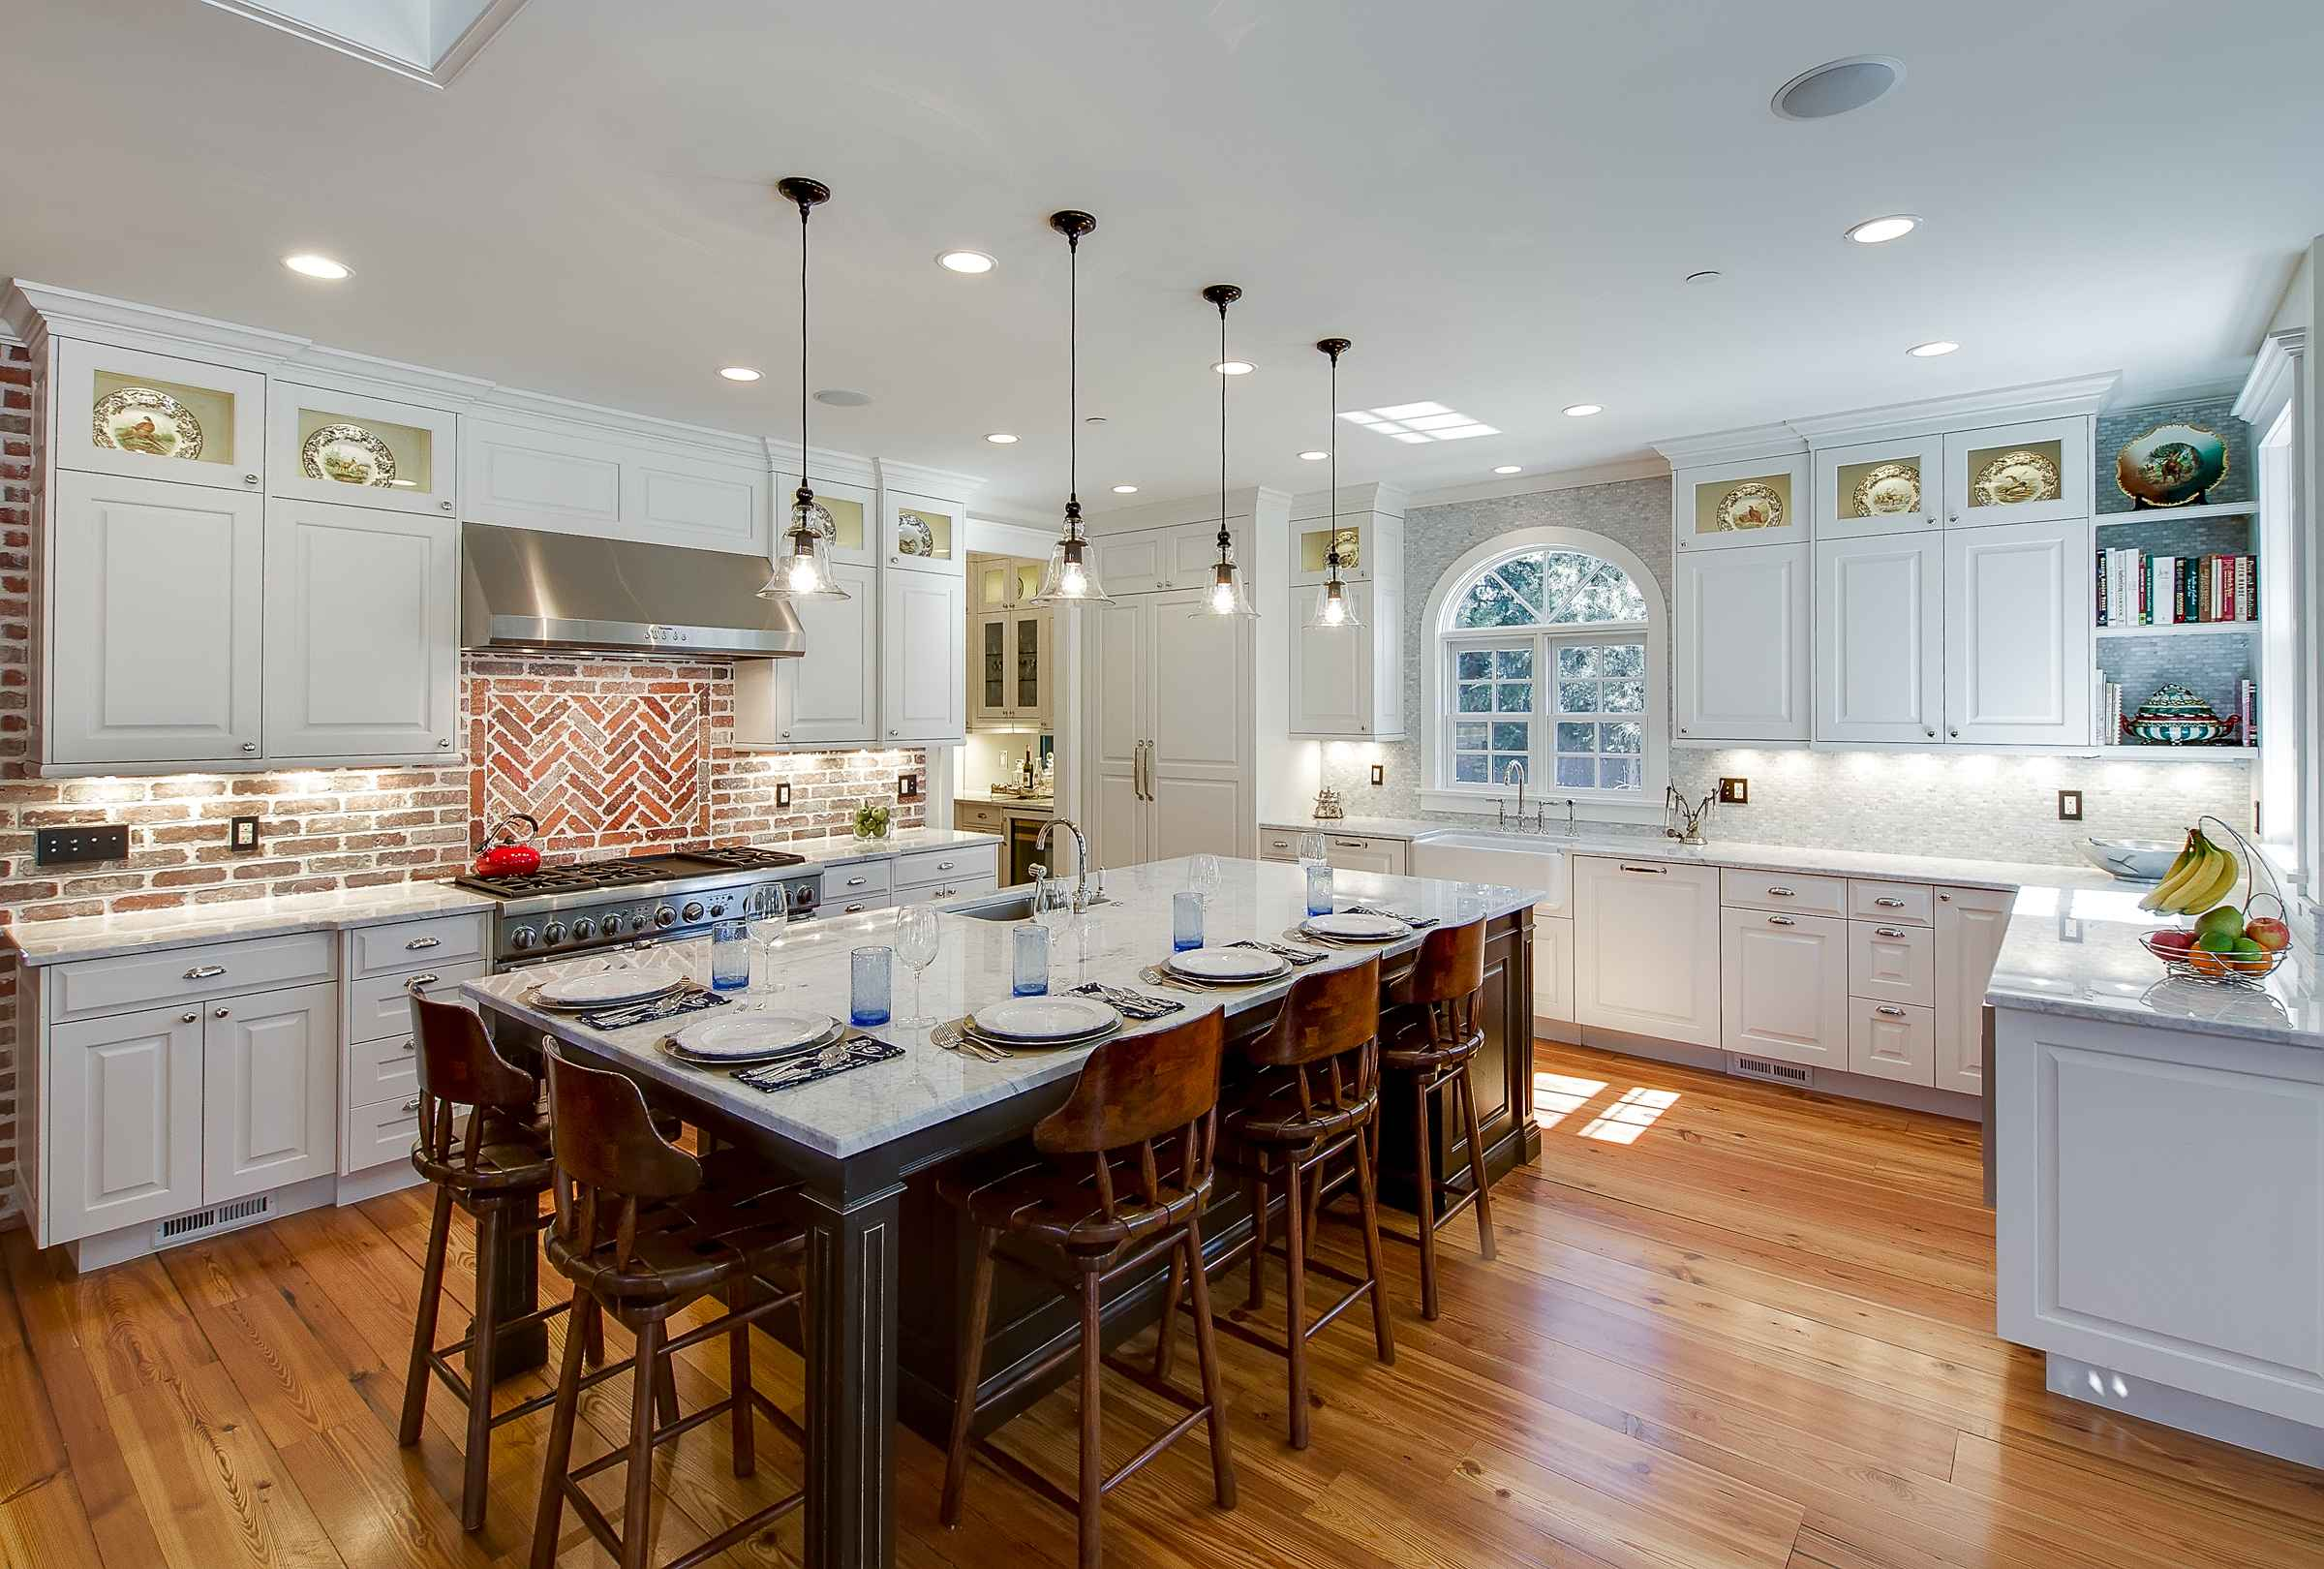 southern charm — sanctuary kitchen and bath design.jpg